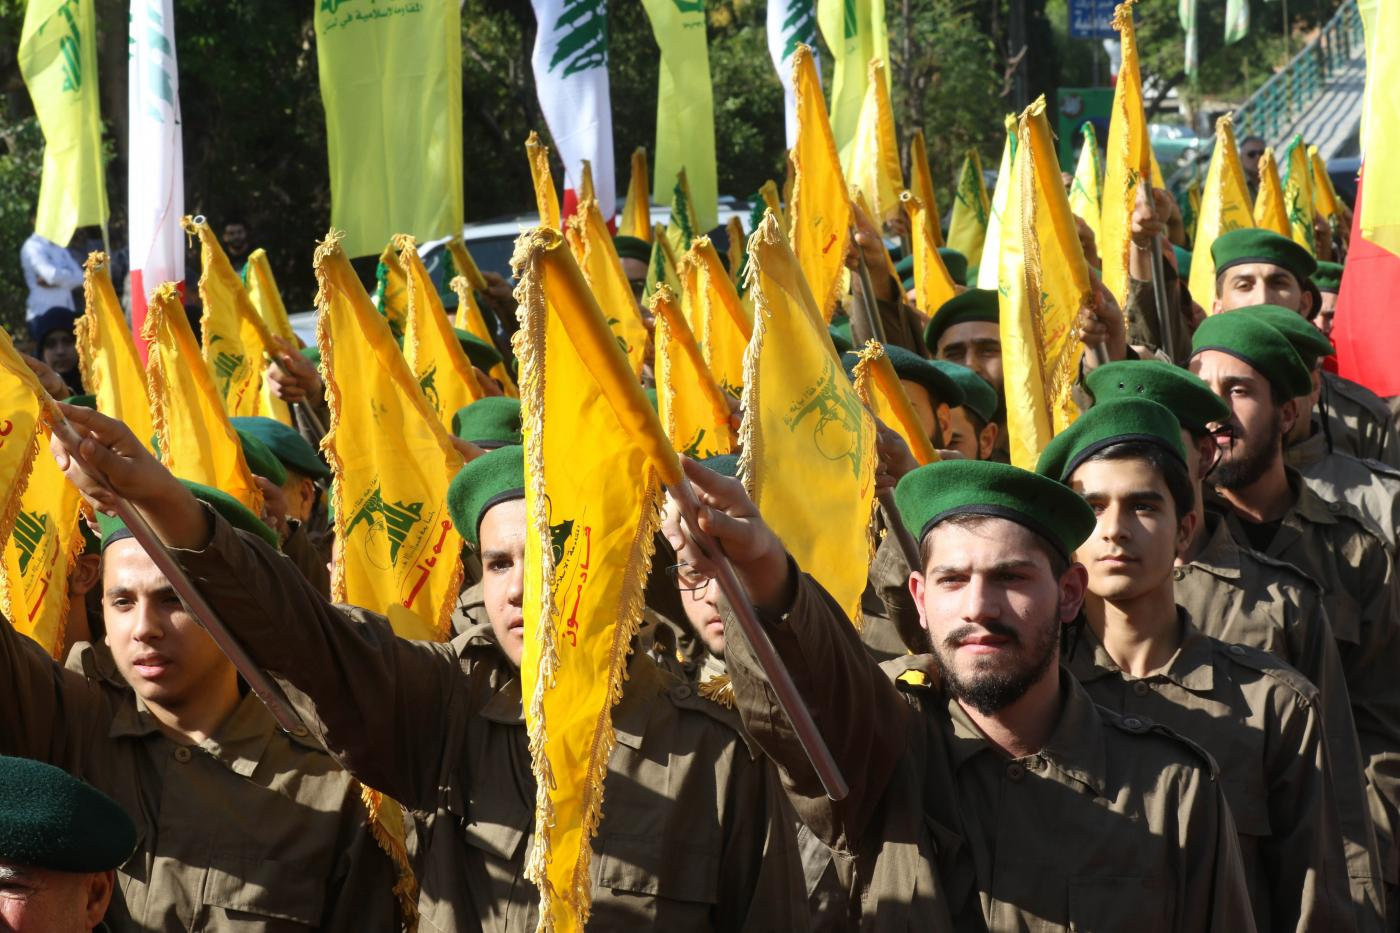 EU must change its approach to Hezbollah and place the group in its  entirety on the EU sanctions list - EU Reporter